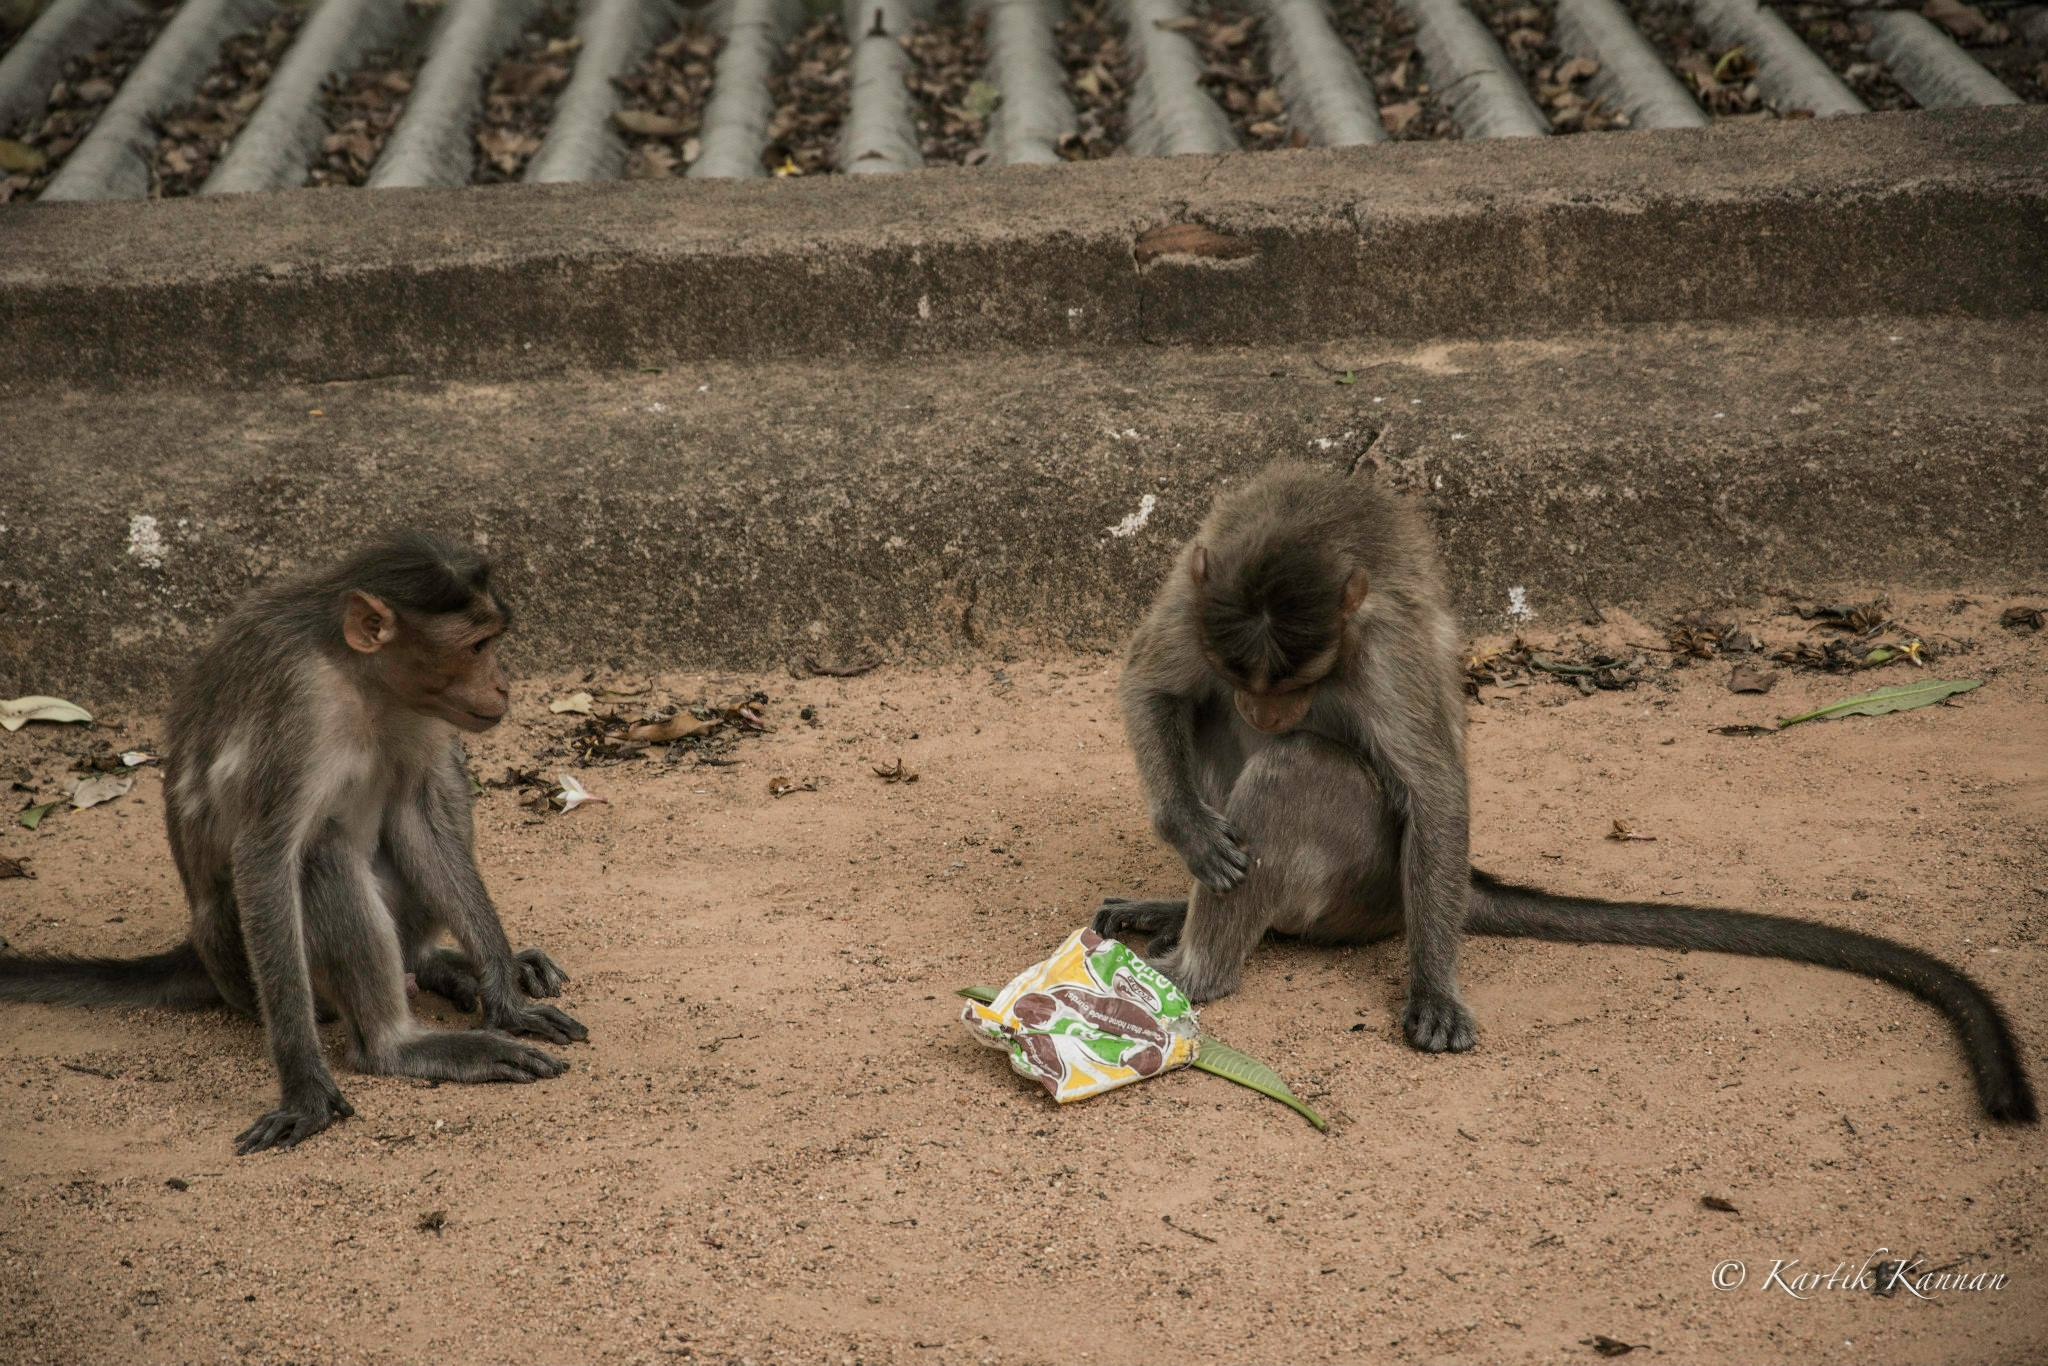 Monkeys of Makalidurga